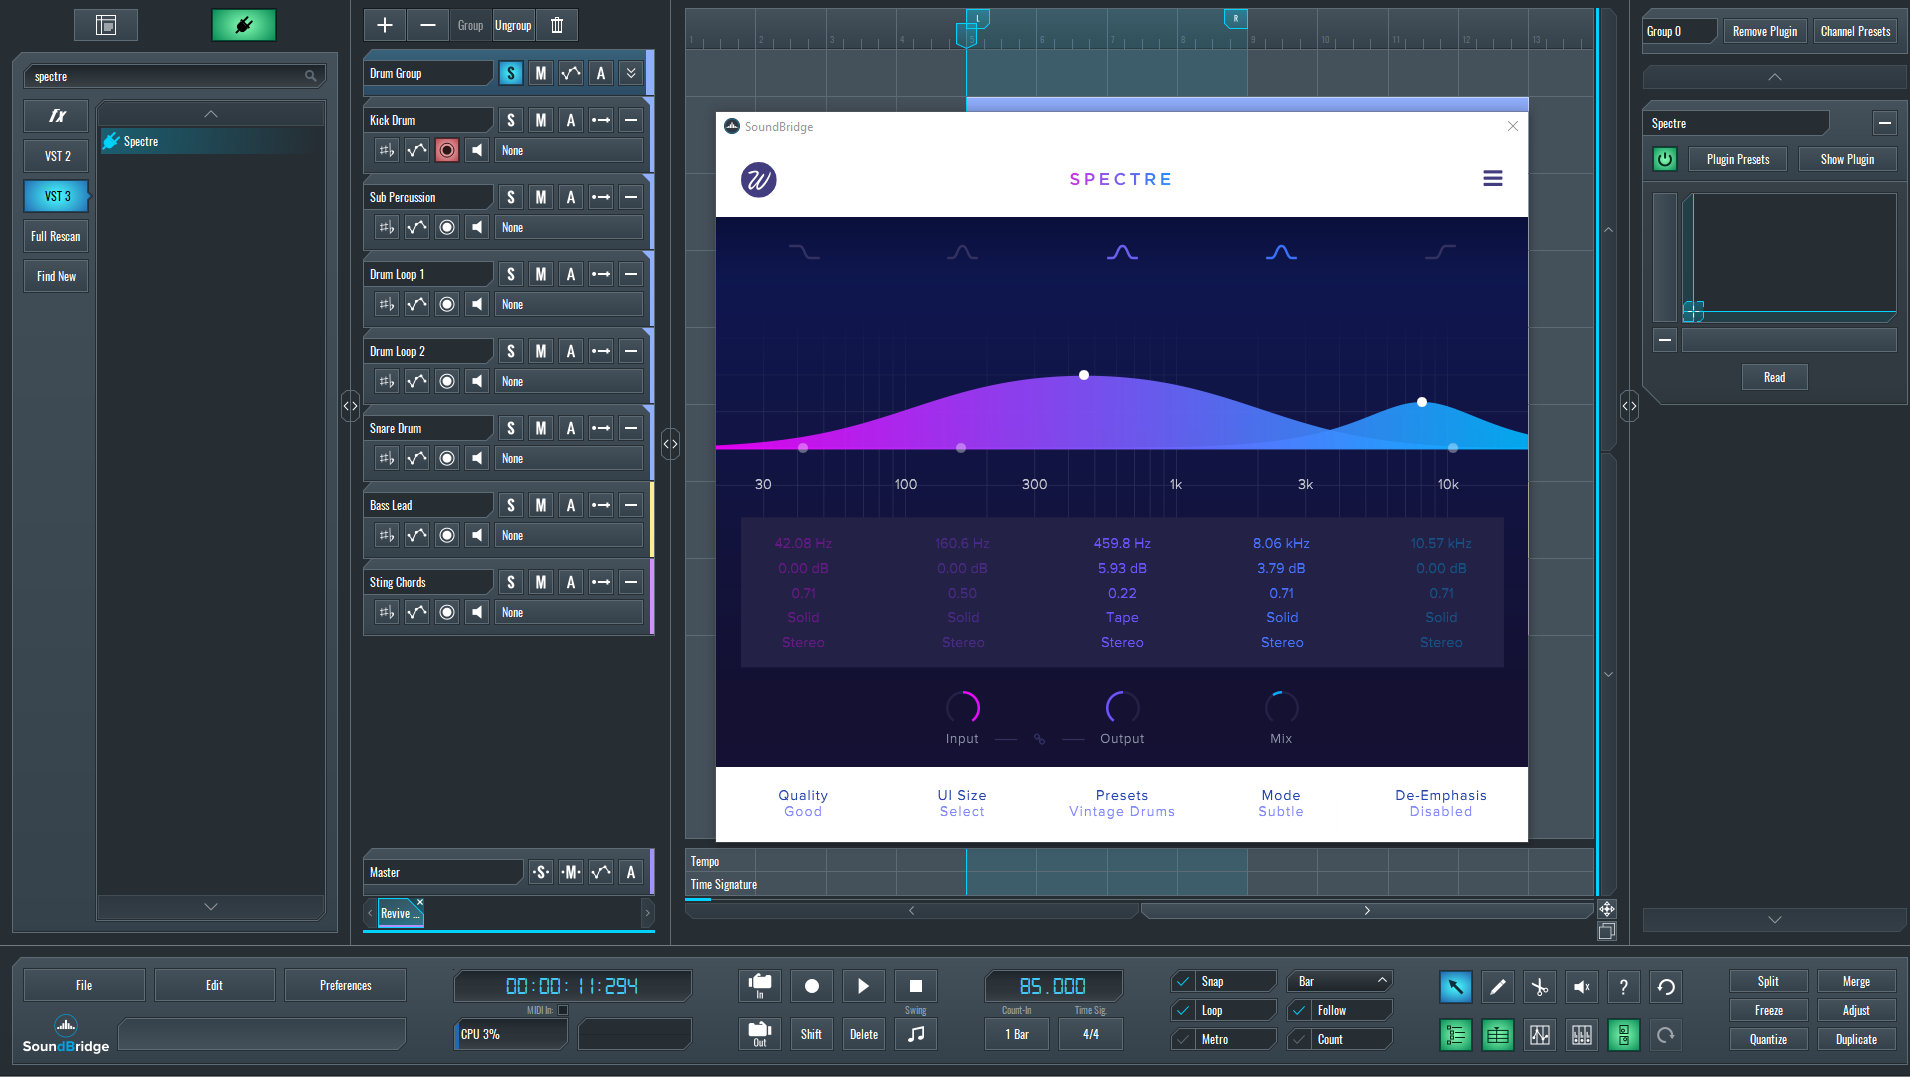 Spectre Multiband Harmonic Saturation Drum Group settings